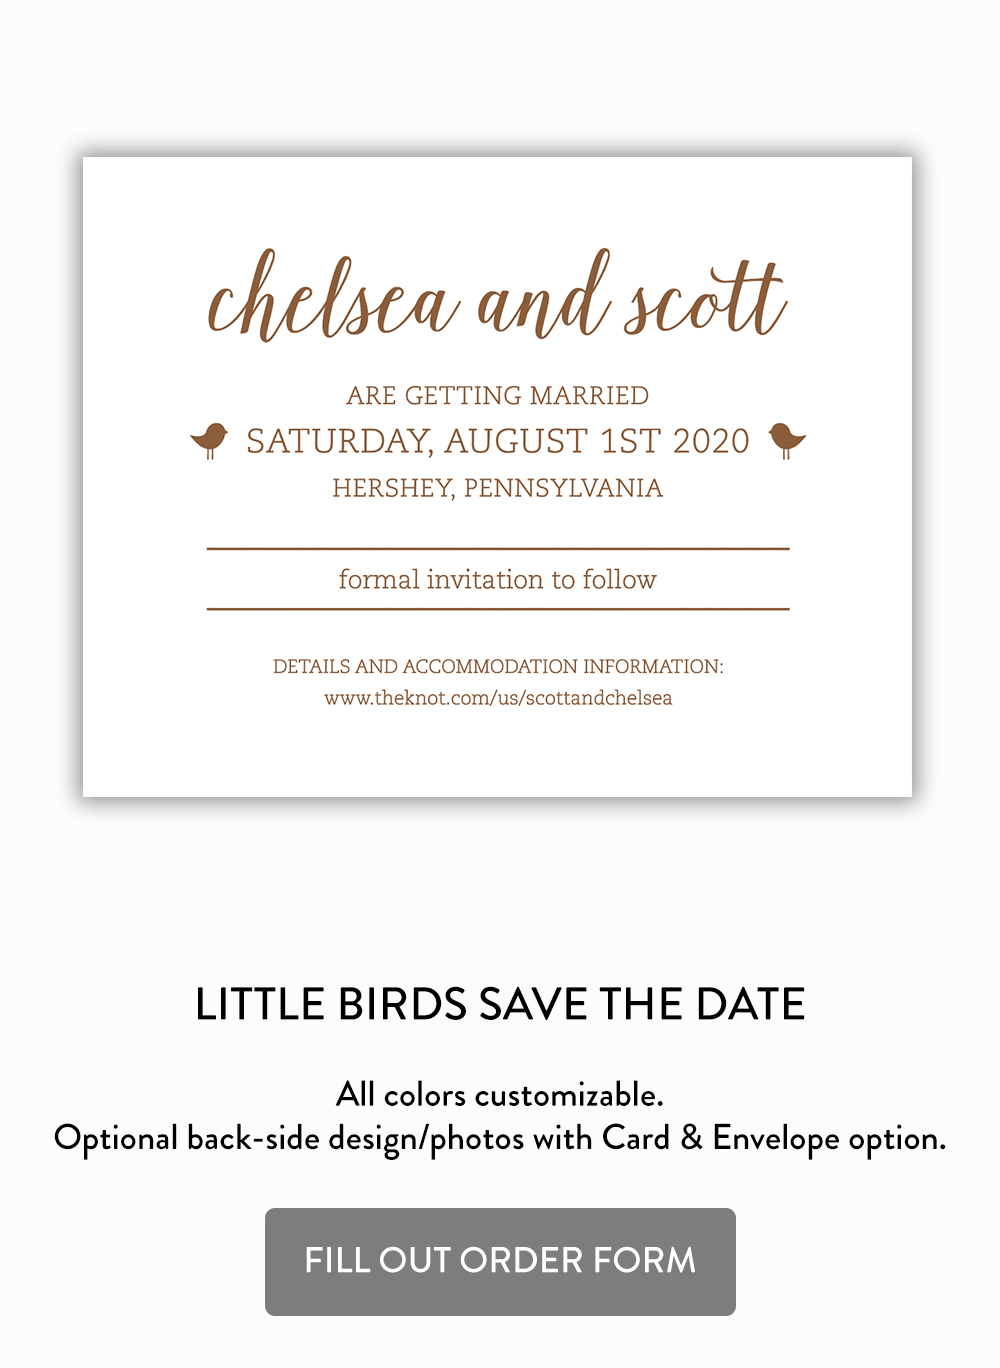 LittleBirds_SavetheDate.jpg